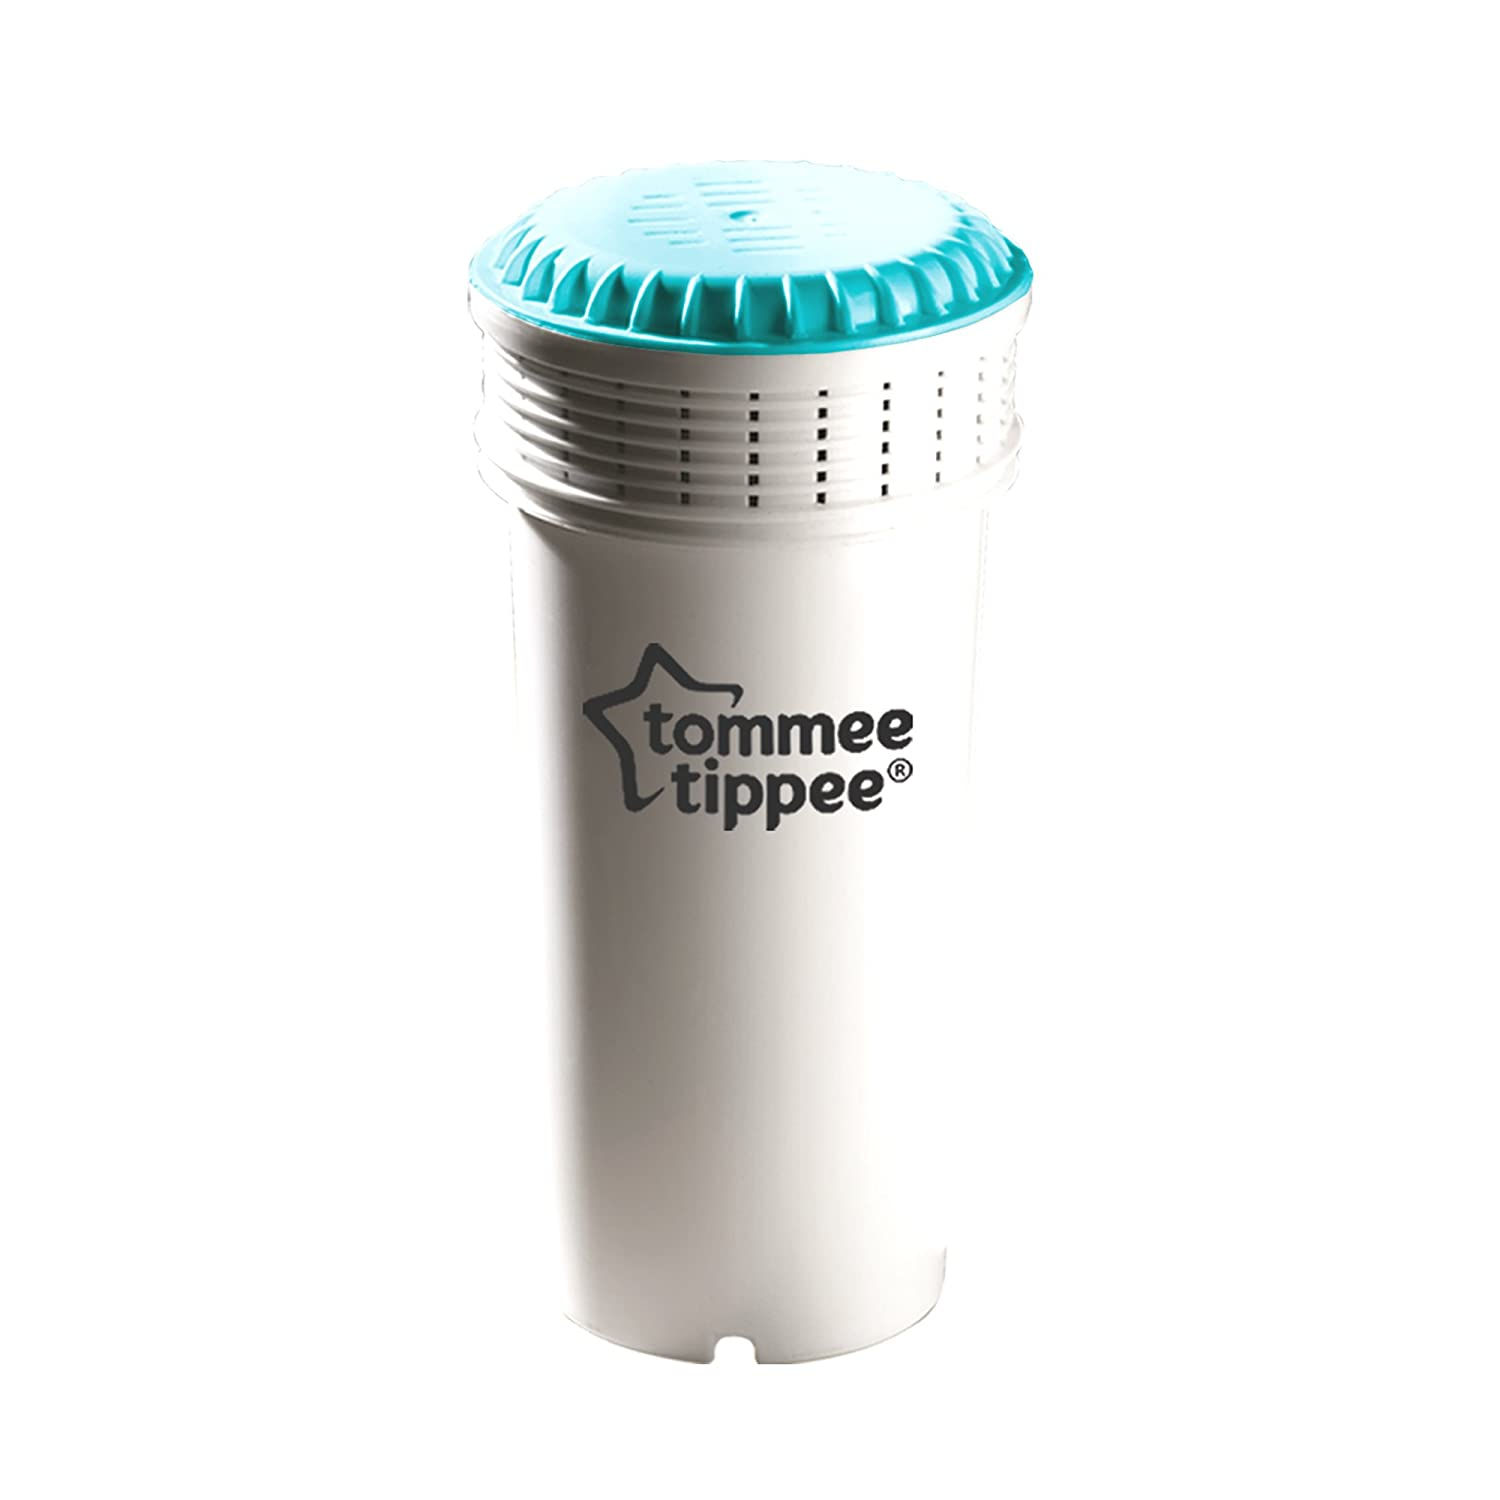 Tommee Tippee Perfect Prep Replacement Filter 423712